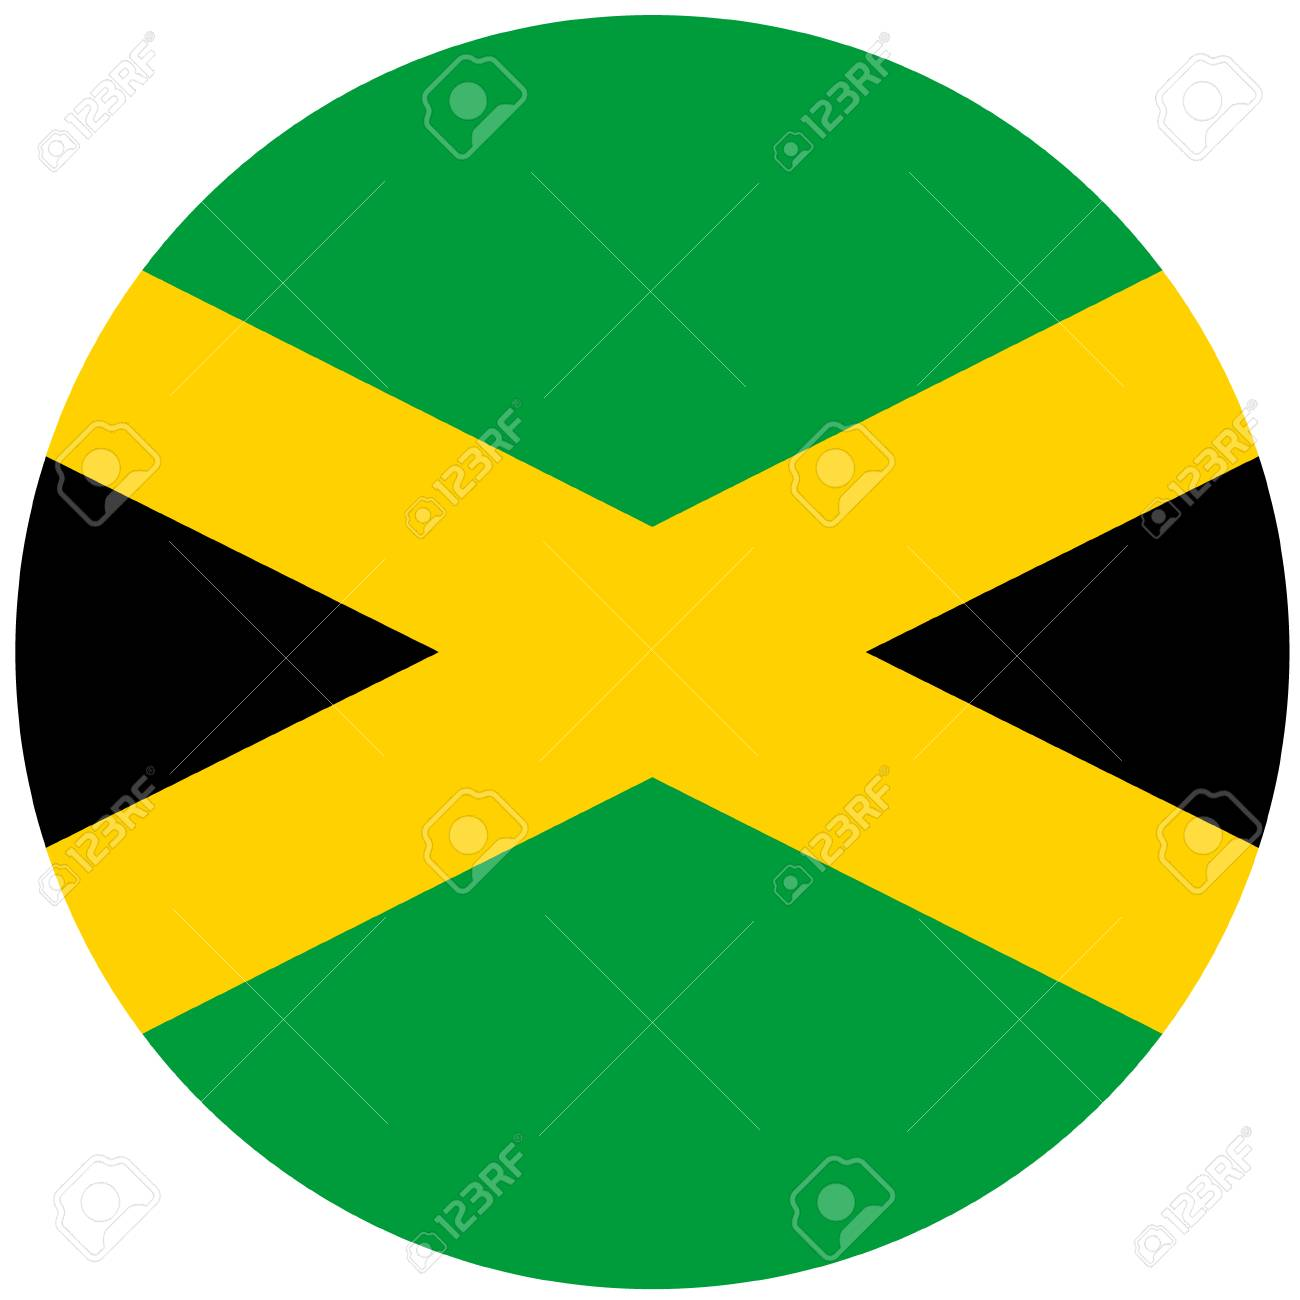 Raster Illustration Of Jamaica Flag Round National Flag Of Jamaica Stock Photo Picture And Royalty Free Image Image 76164358